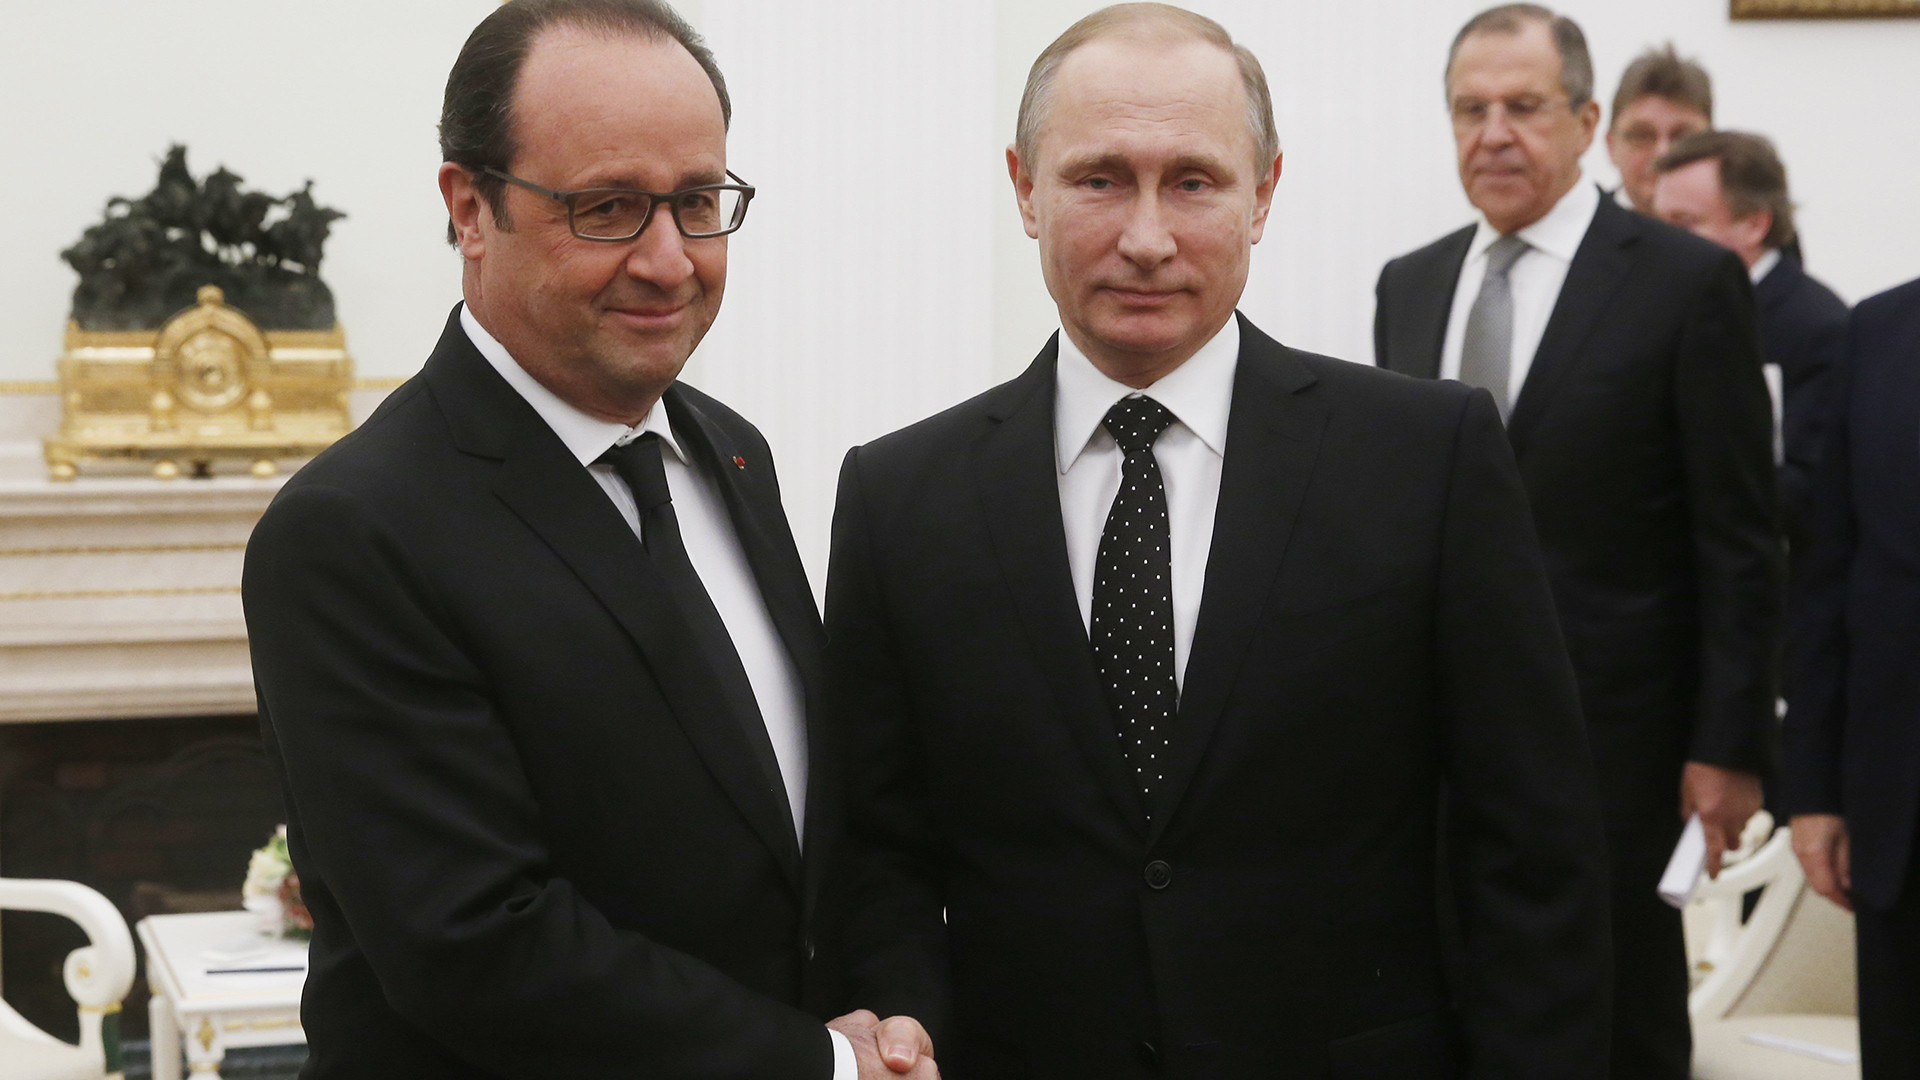 France, Russia agree to tighten cooperation against Islamic State